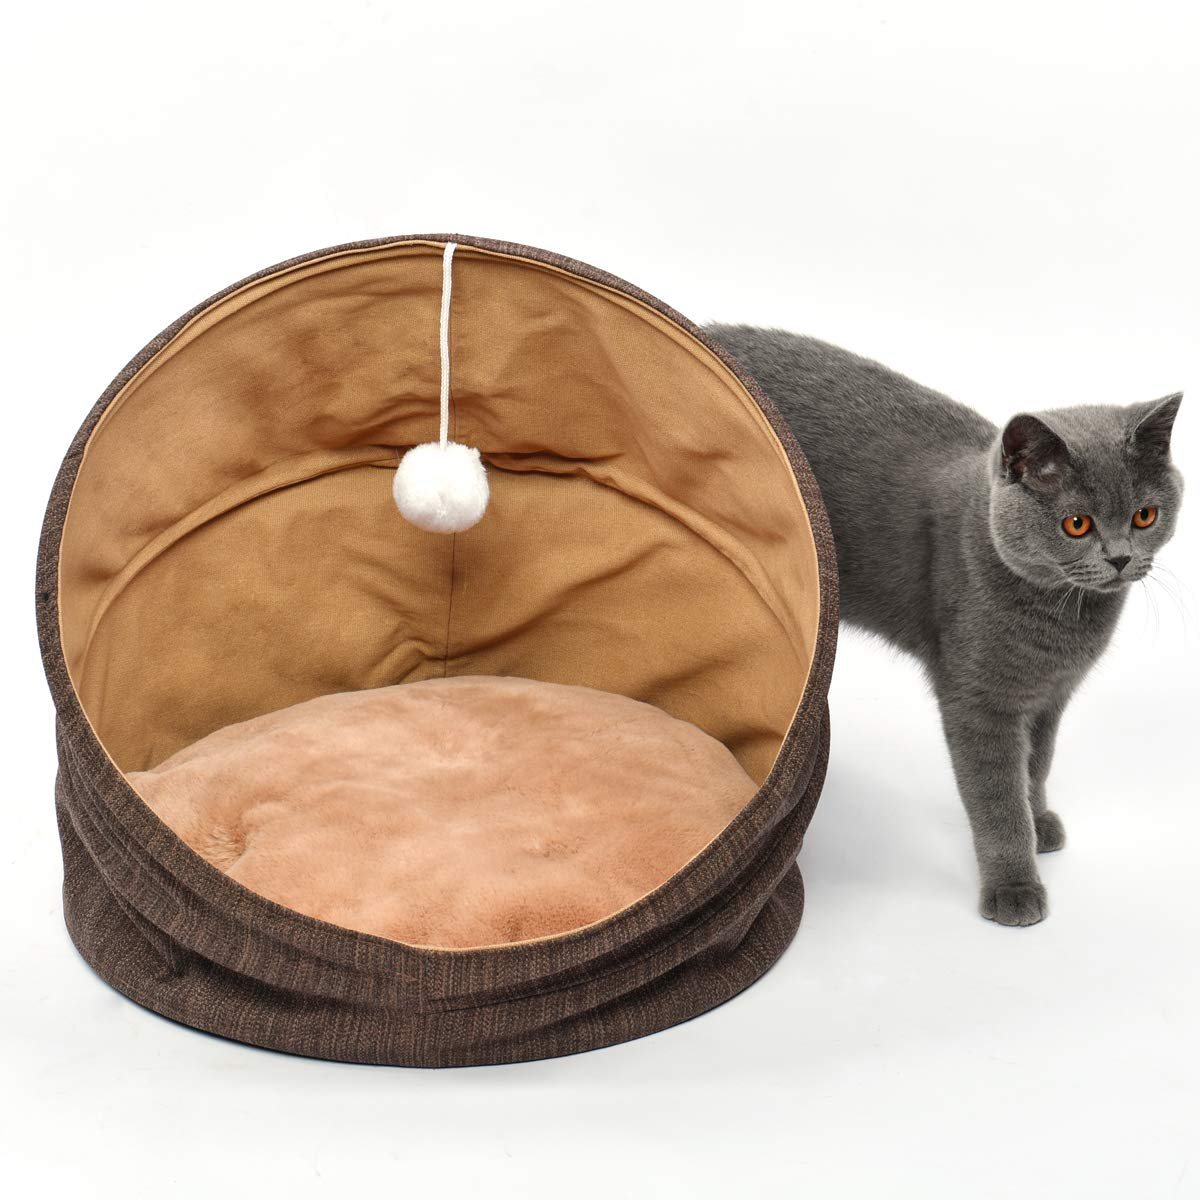 Cuddle Cave Pet Bed Tent for Cats or Small Dogs, Washable Foldable Kitten House with Luxury Shag Faux Fur Mattress & Toy Ball - Brown (18inch) by SUOCO (Image #5)